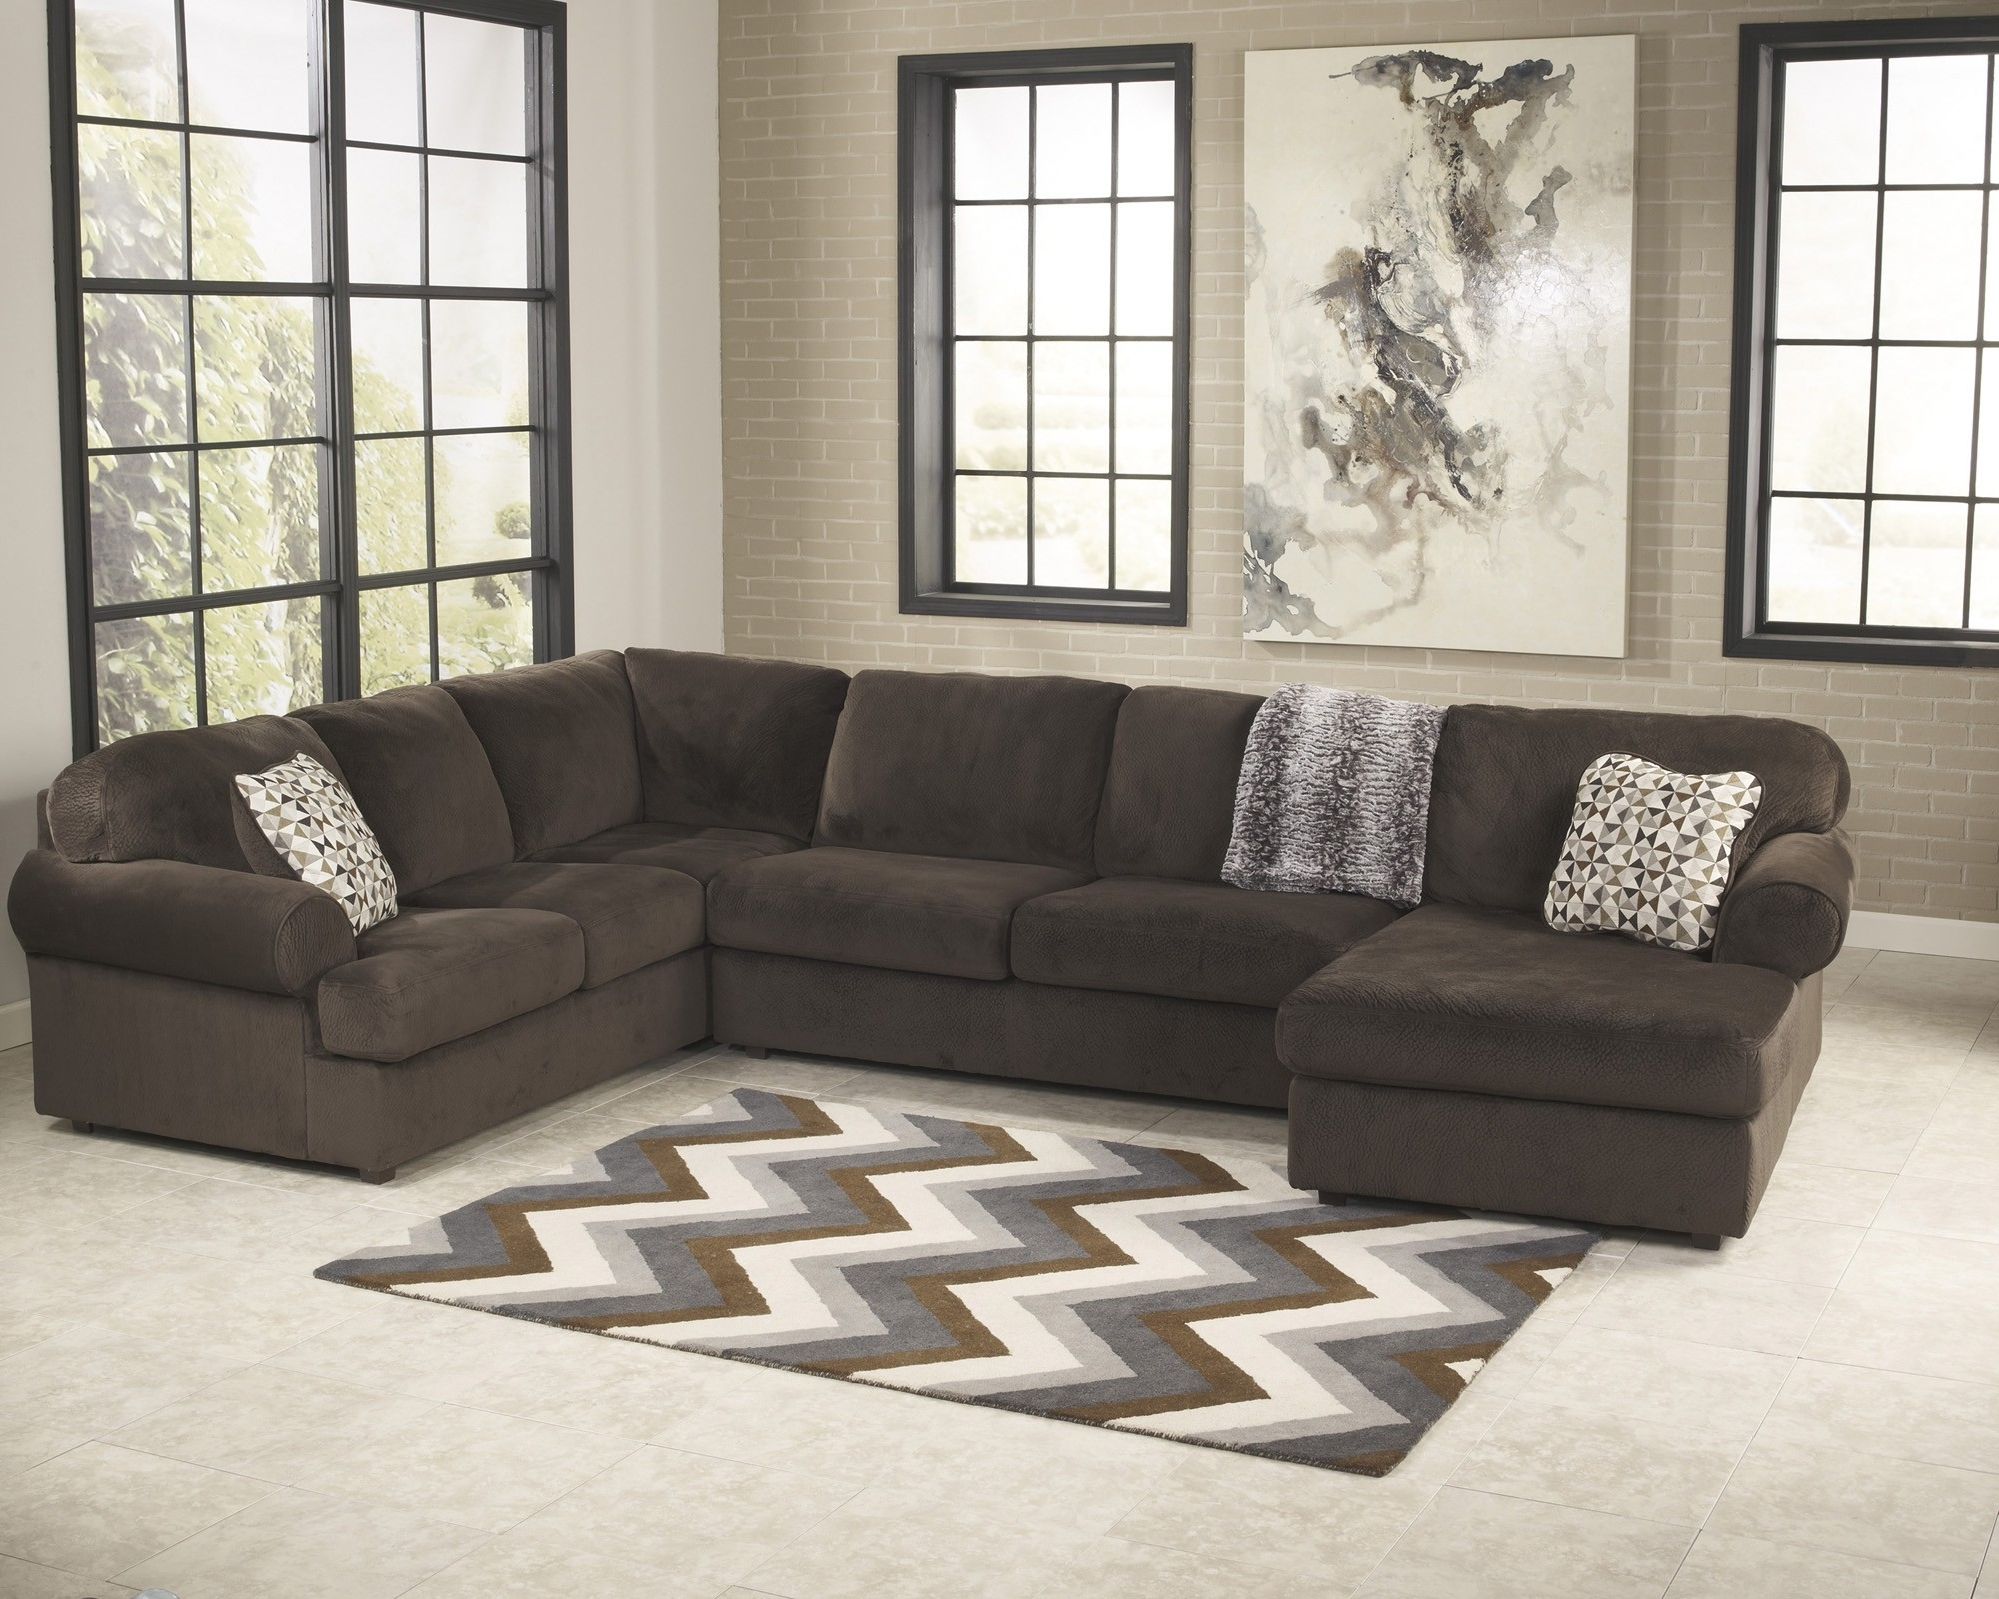 Latest Sectional Sofas In Greenville Sc For Chairs : Jessa Place Chocolate Piece Sectional Sofa For Sofas Sale (View 9 of 20)